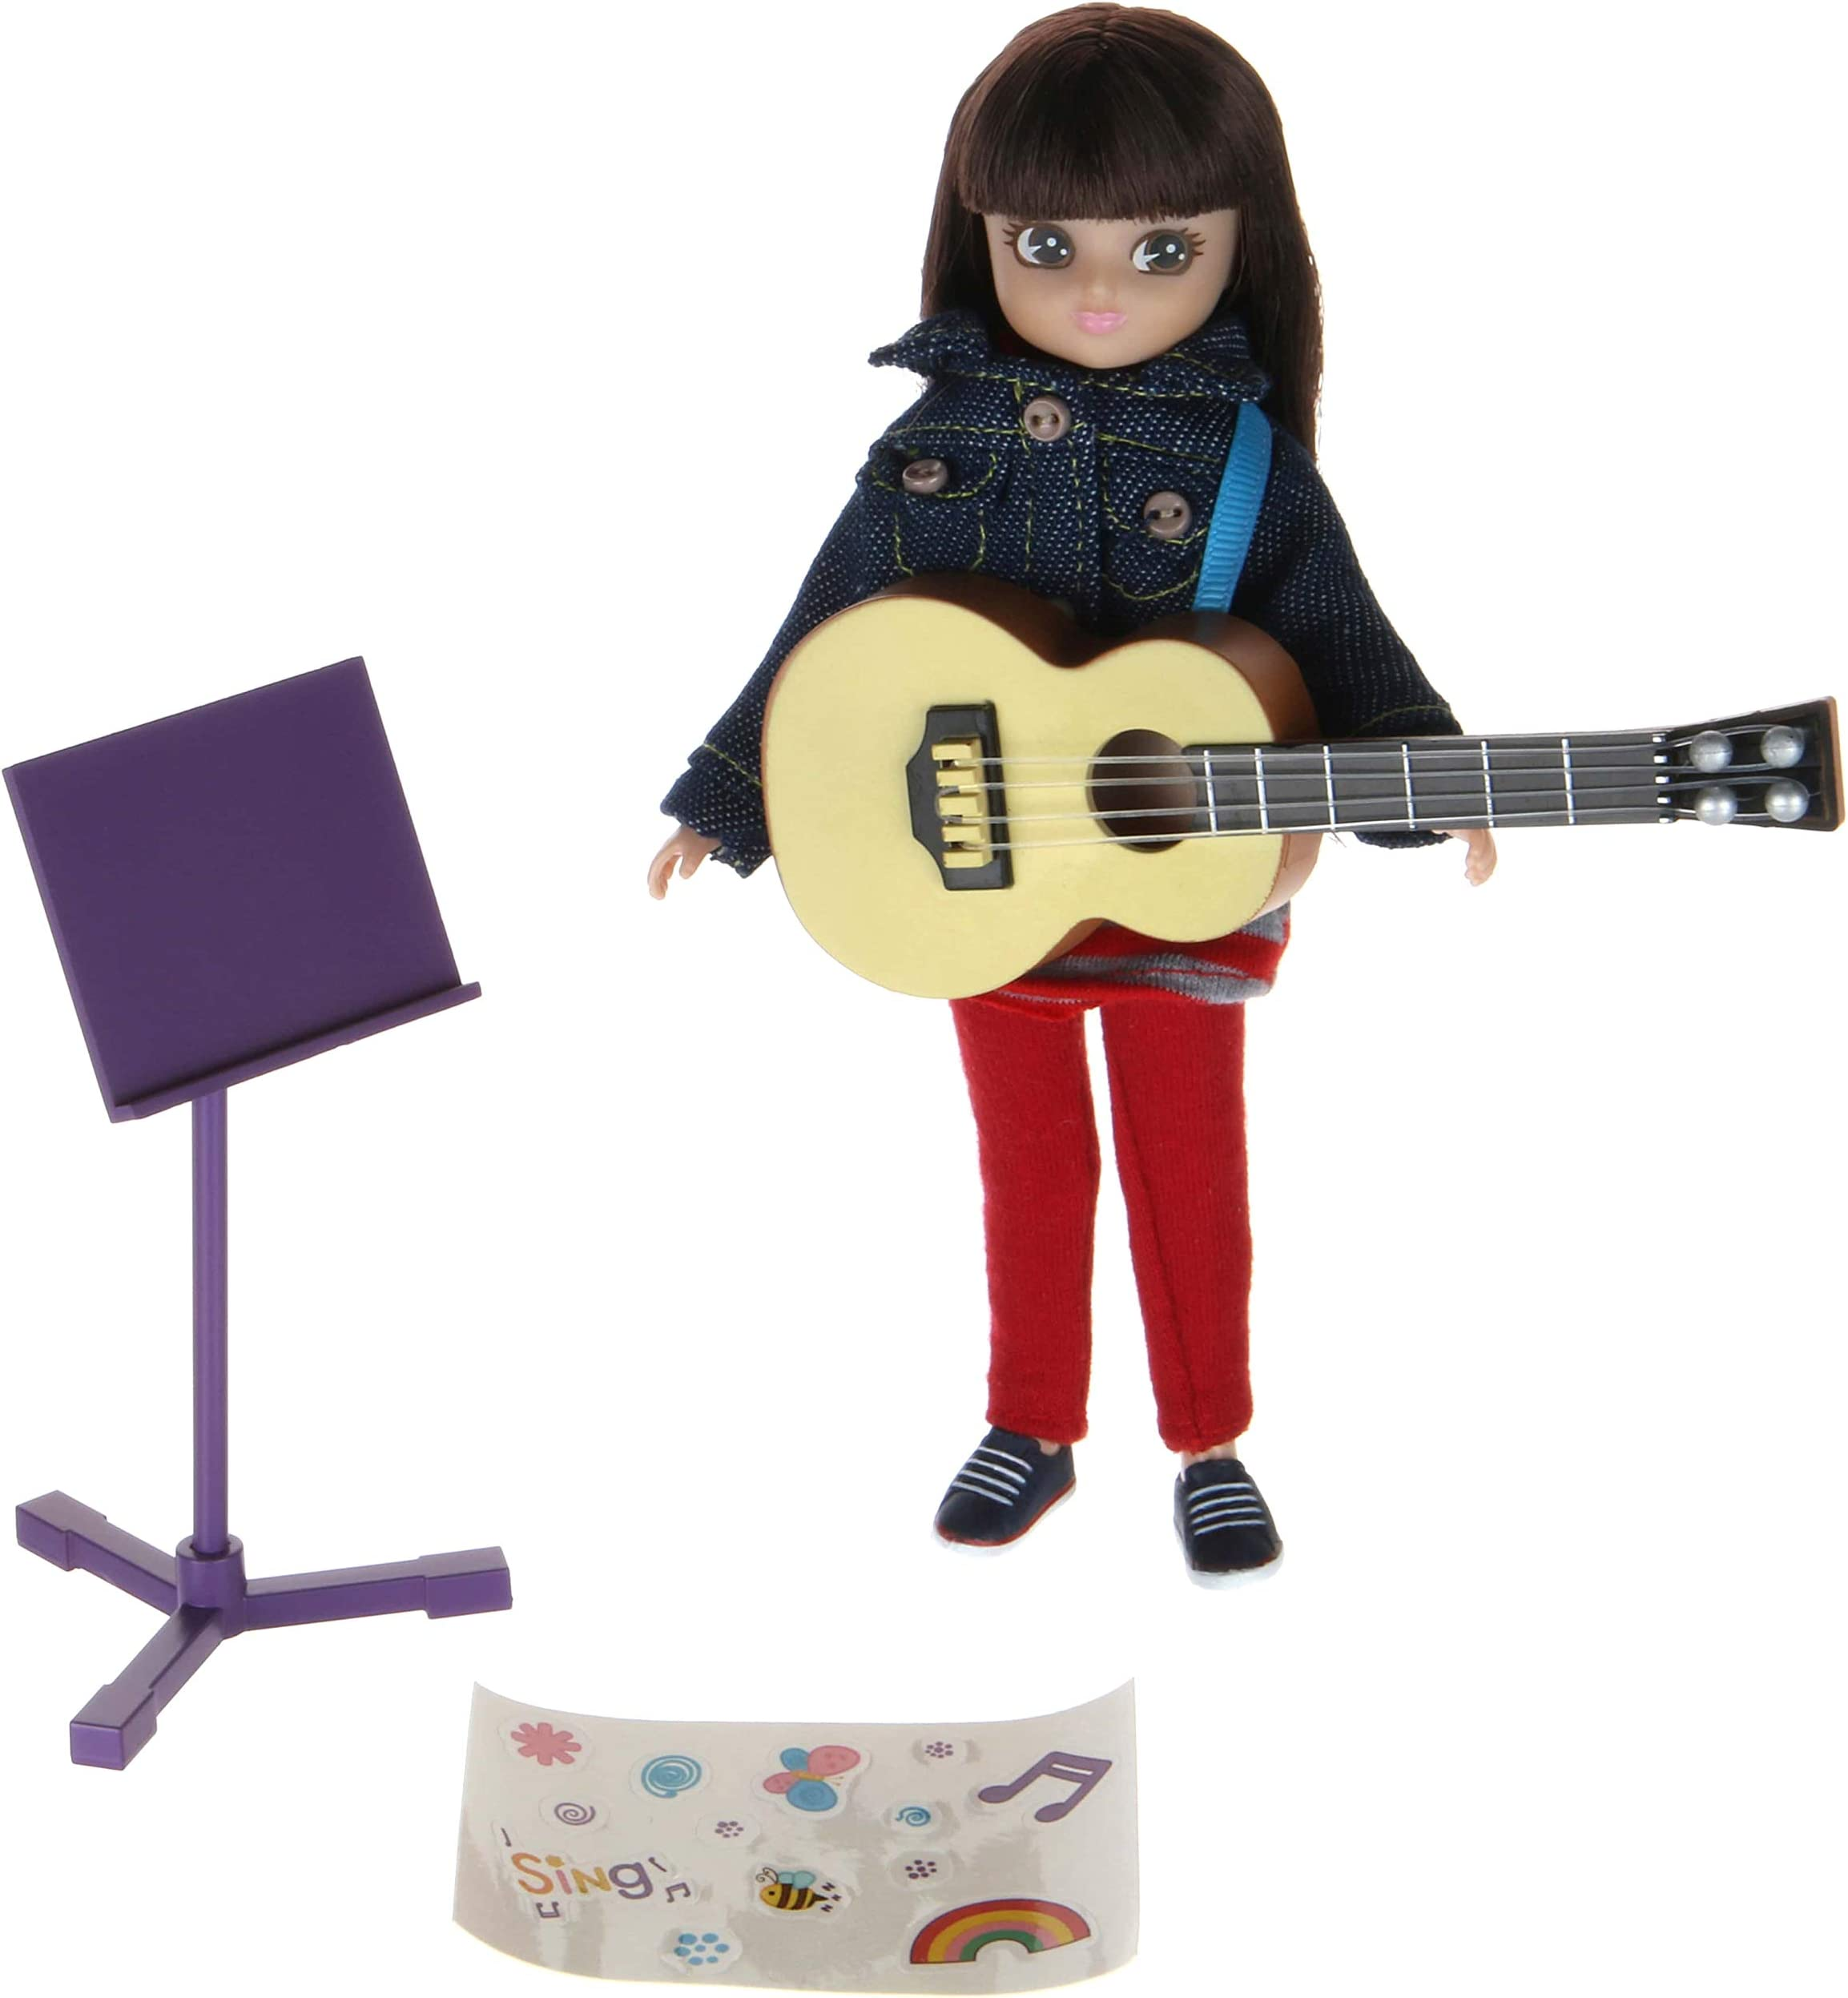 Music Class Lottie Doll | Music Doll with Doll Guitar | Fab Doll Music Set | Musician Doll Playset | Doll Music Activity Playset with Doll Denim Jacket & Doll Guitar | Toys for Girls, Boys, Musicians